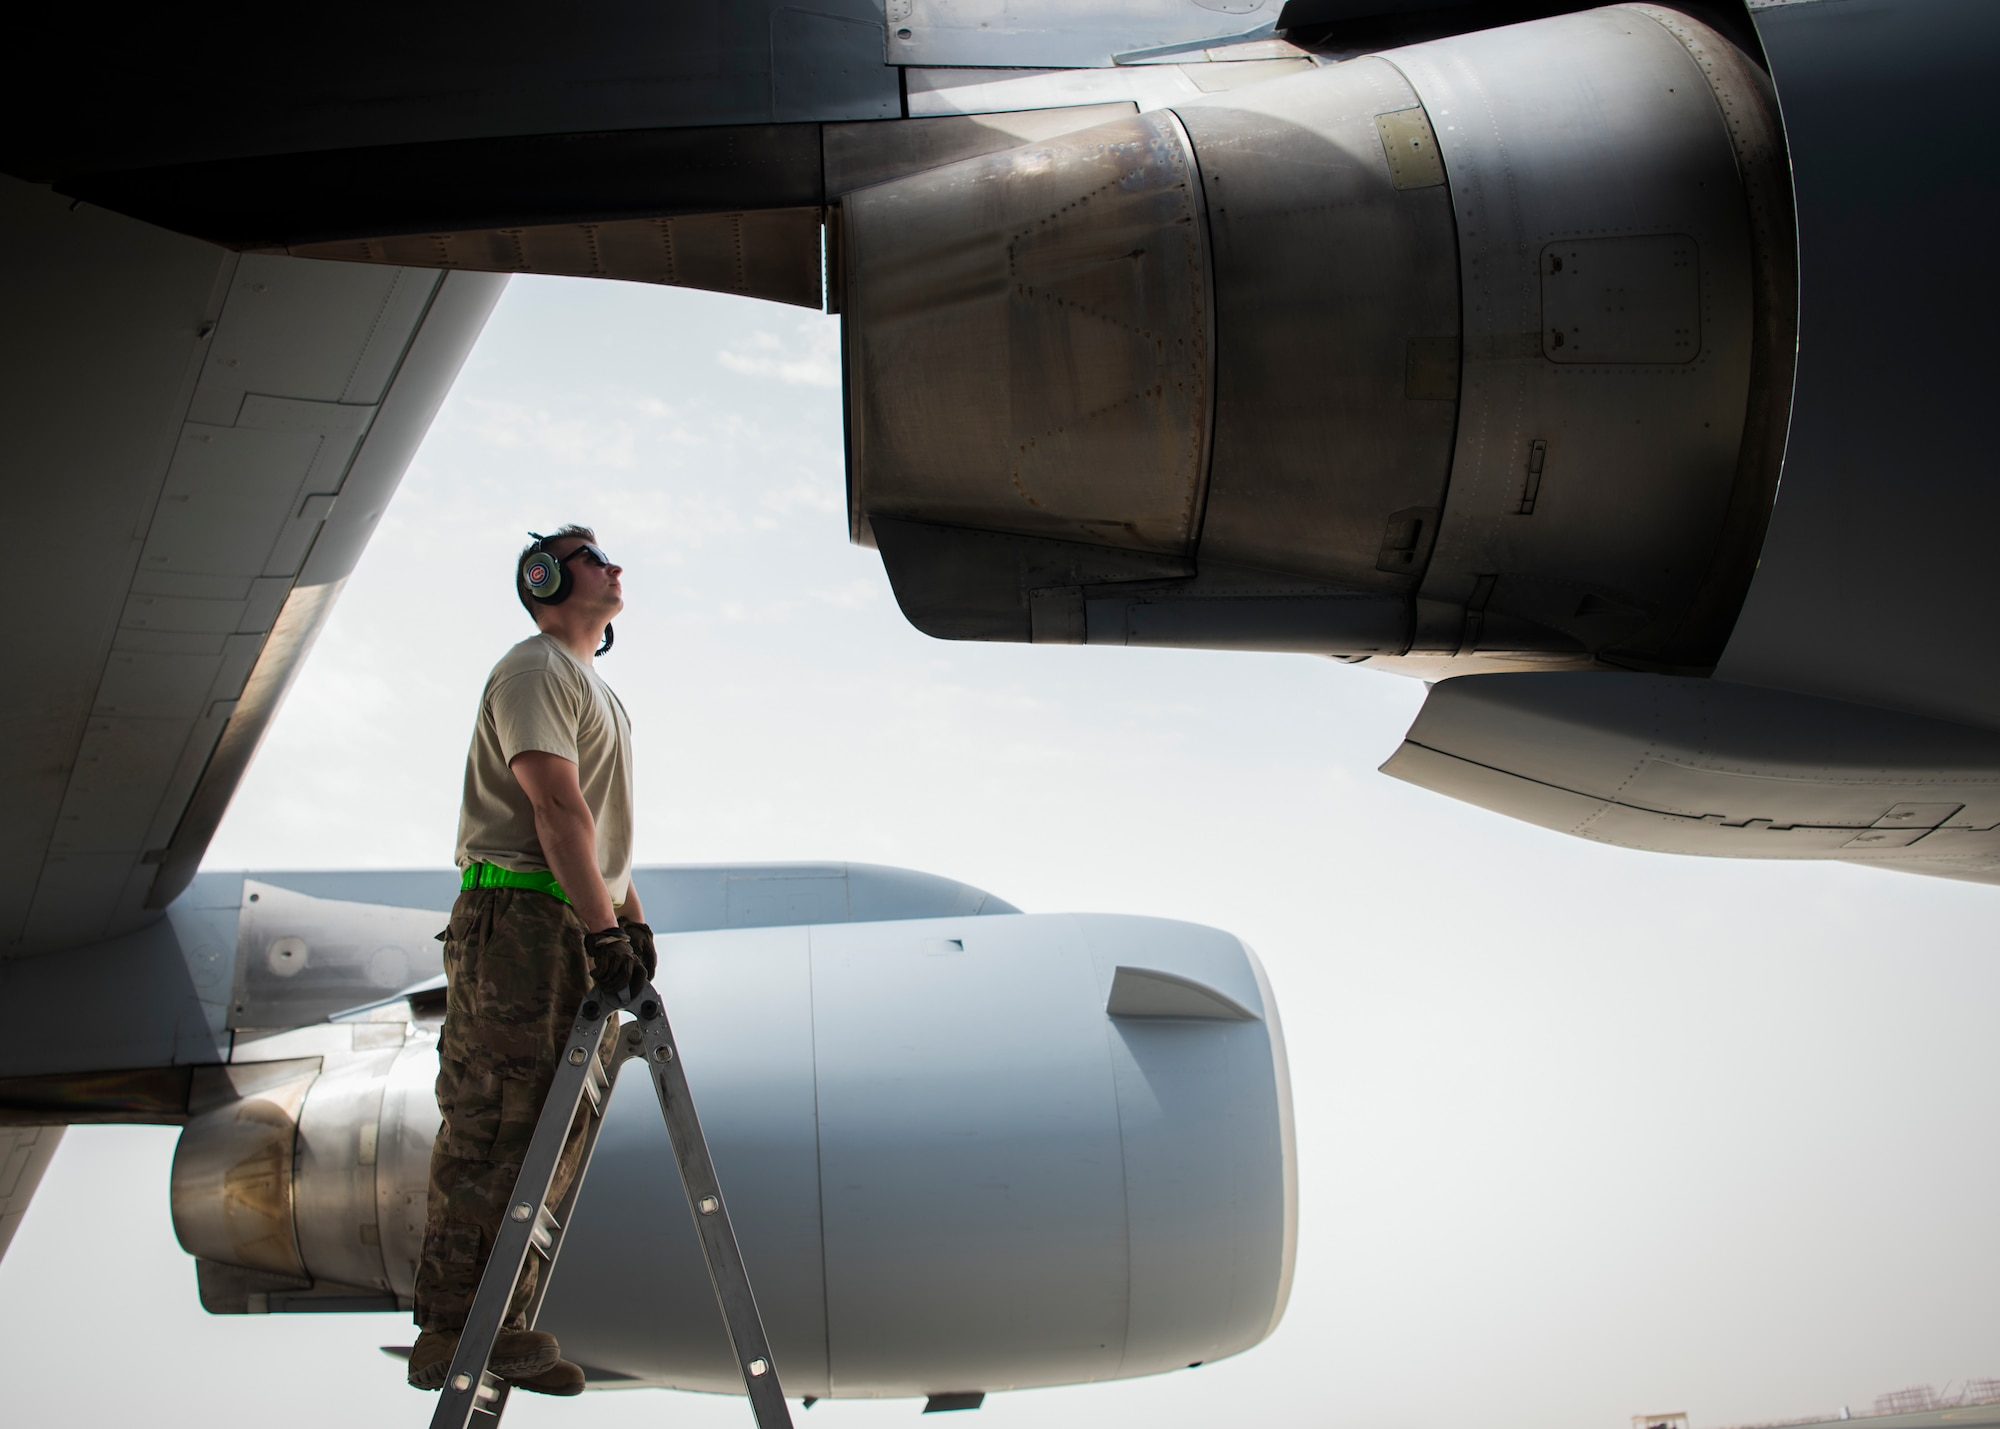 Senior Airman Eric Pashnick, 5th Expeditionary Air Mobility Squadron crew chief, inspects an engine on a C-17 Globemaster III aircraft May 23, 2018, at an undisclosed location in Southwest Asia. The primary mission of the C-17 here is to provide rapid strategic delivery of troops and various types of cargo to bases throughout the U.S. Central Command area of responsibility. (U.S. Air Force photo by Staff Sgt. Christopher Stoltz)